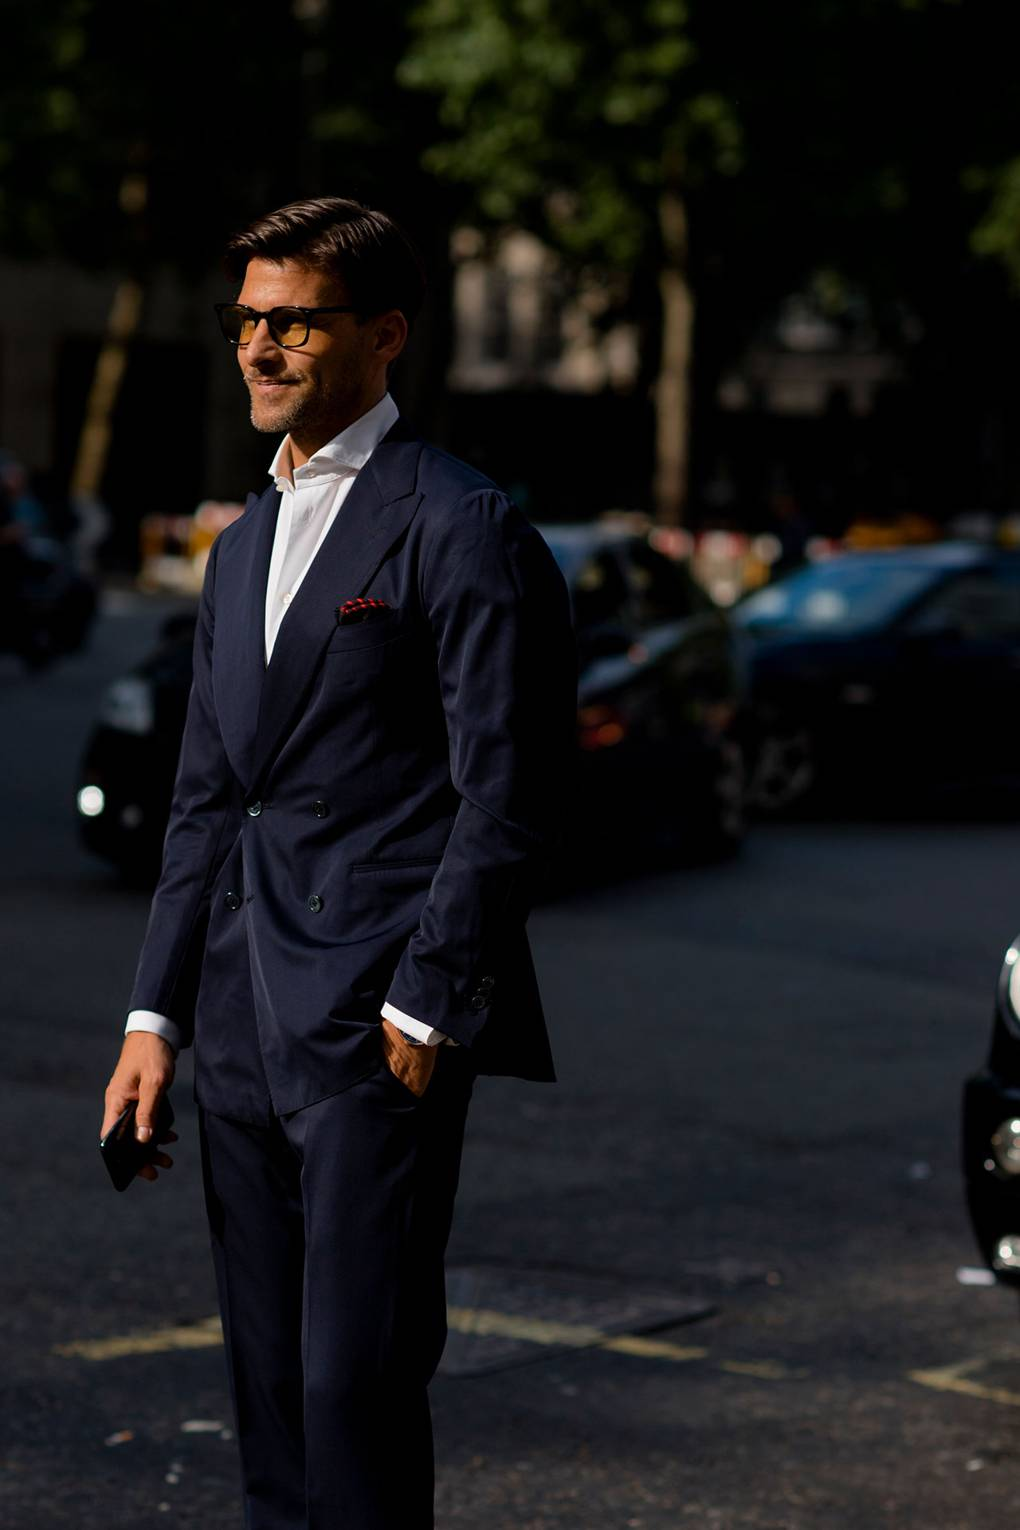 London Fashion Week Men's S/S 2019 Man in Navy Two-Piece Suit